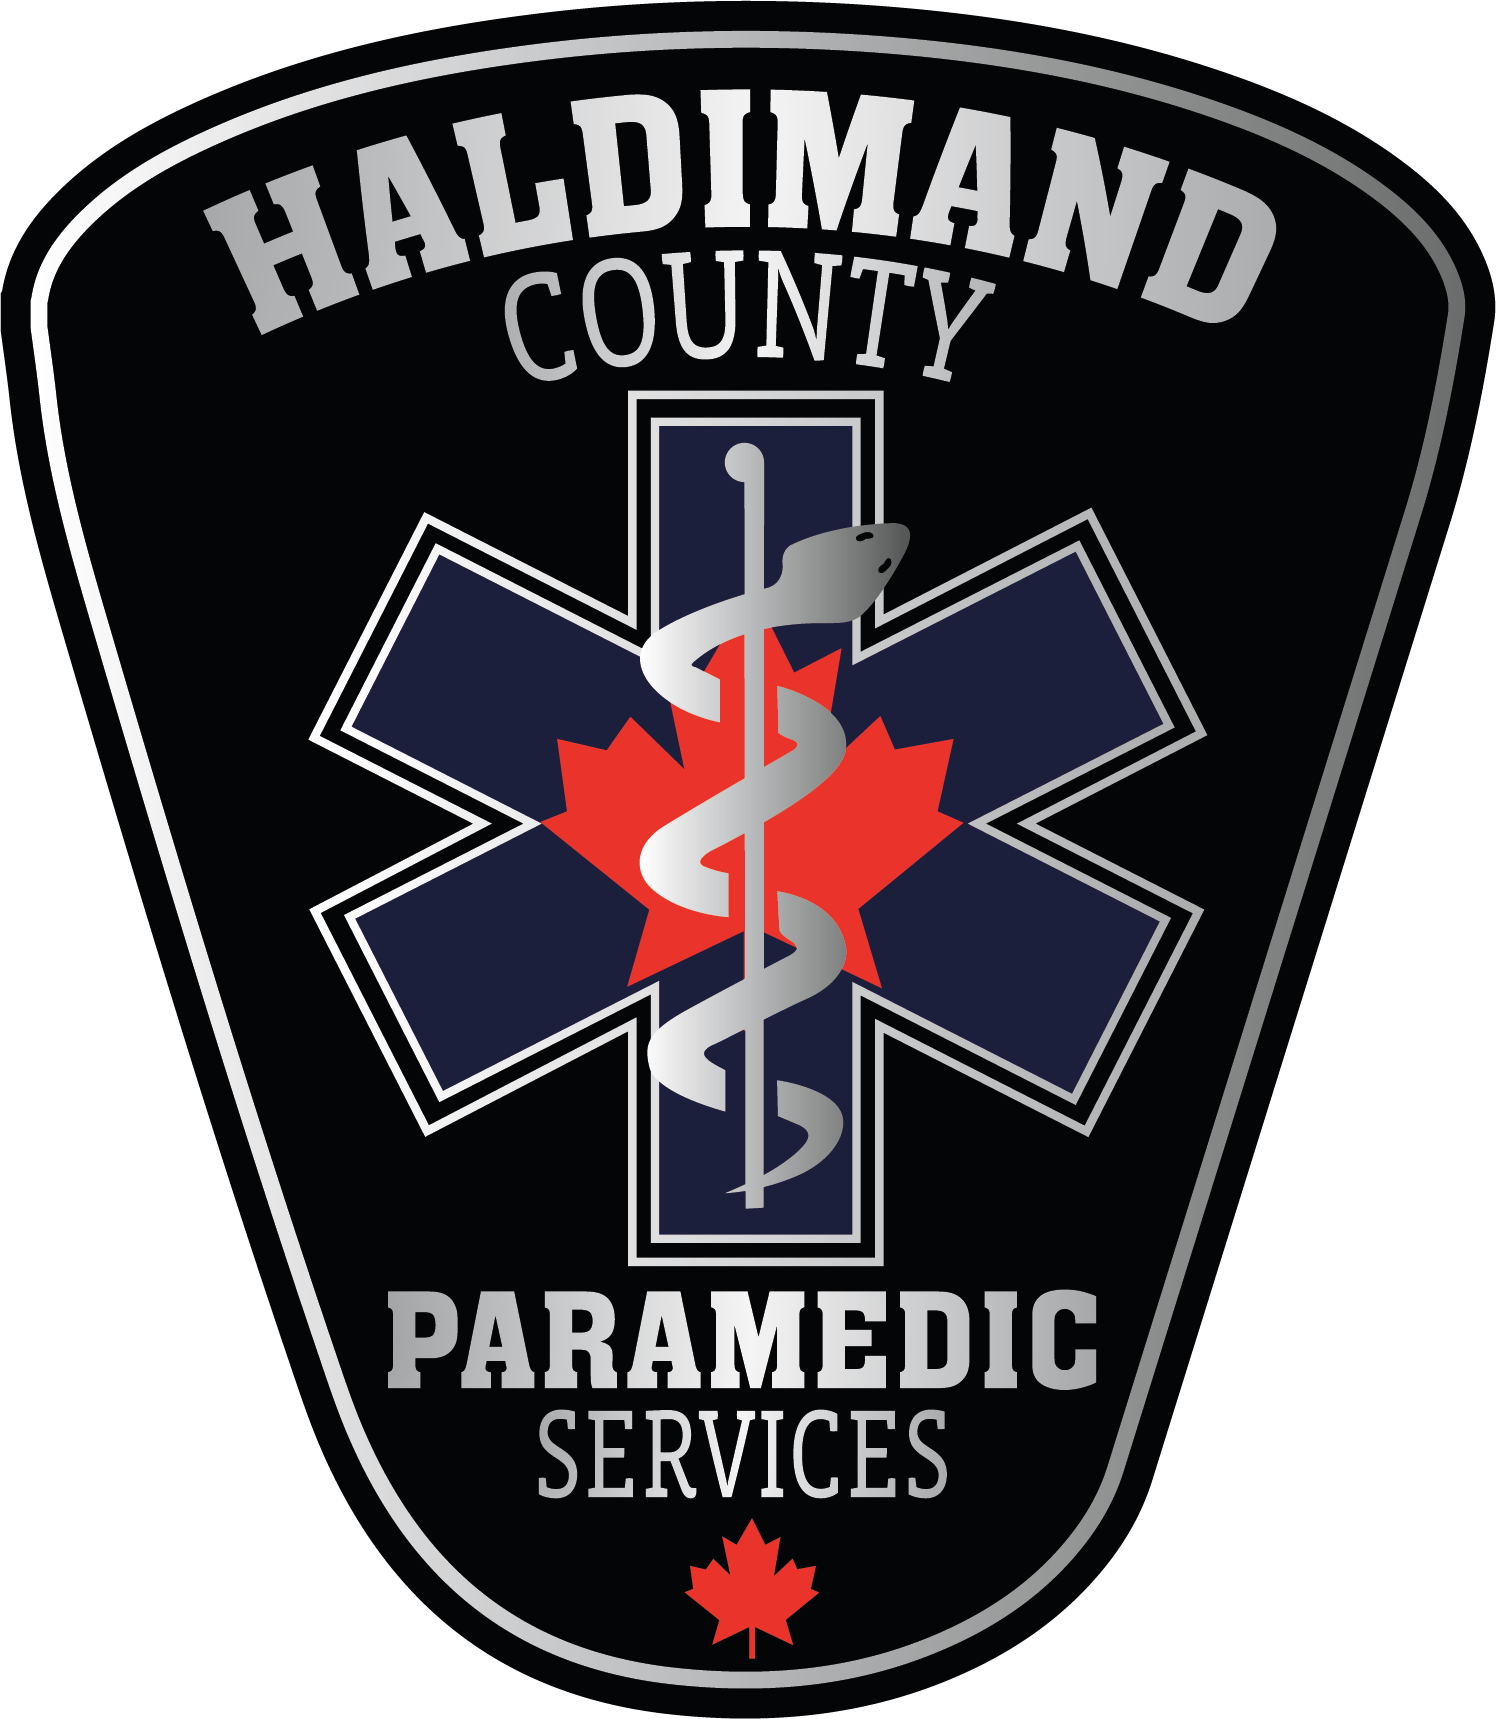 Haldimand County Paramedic Services